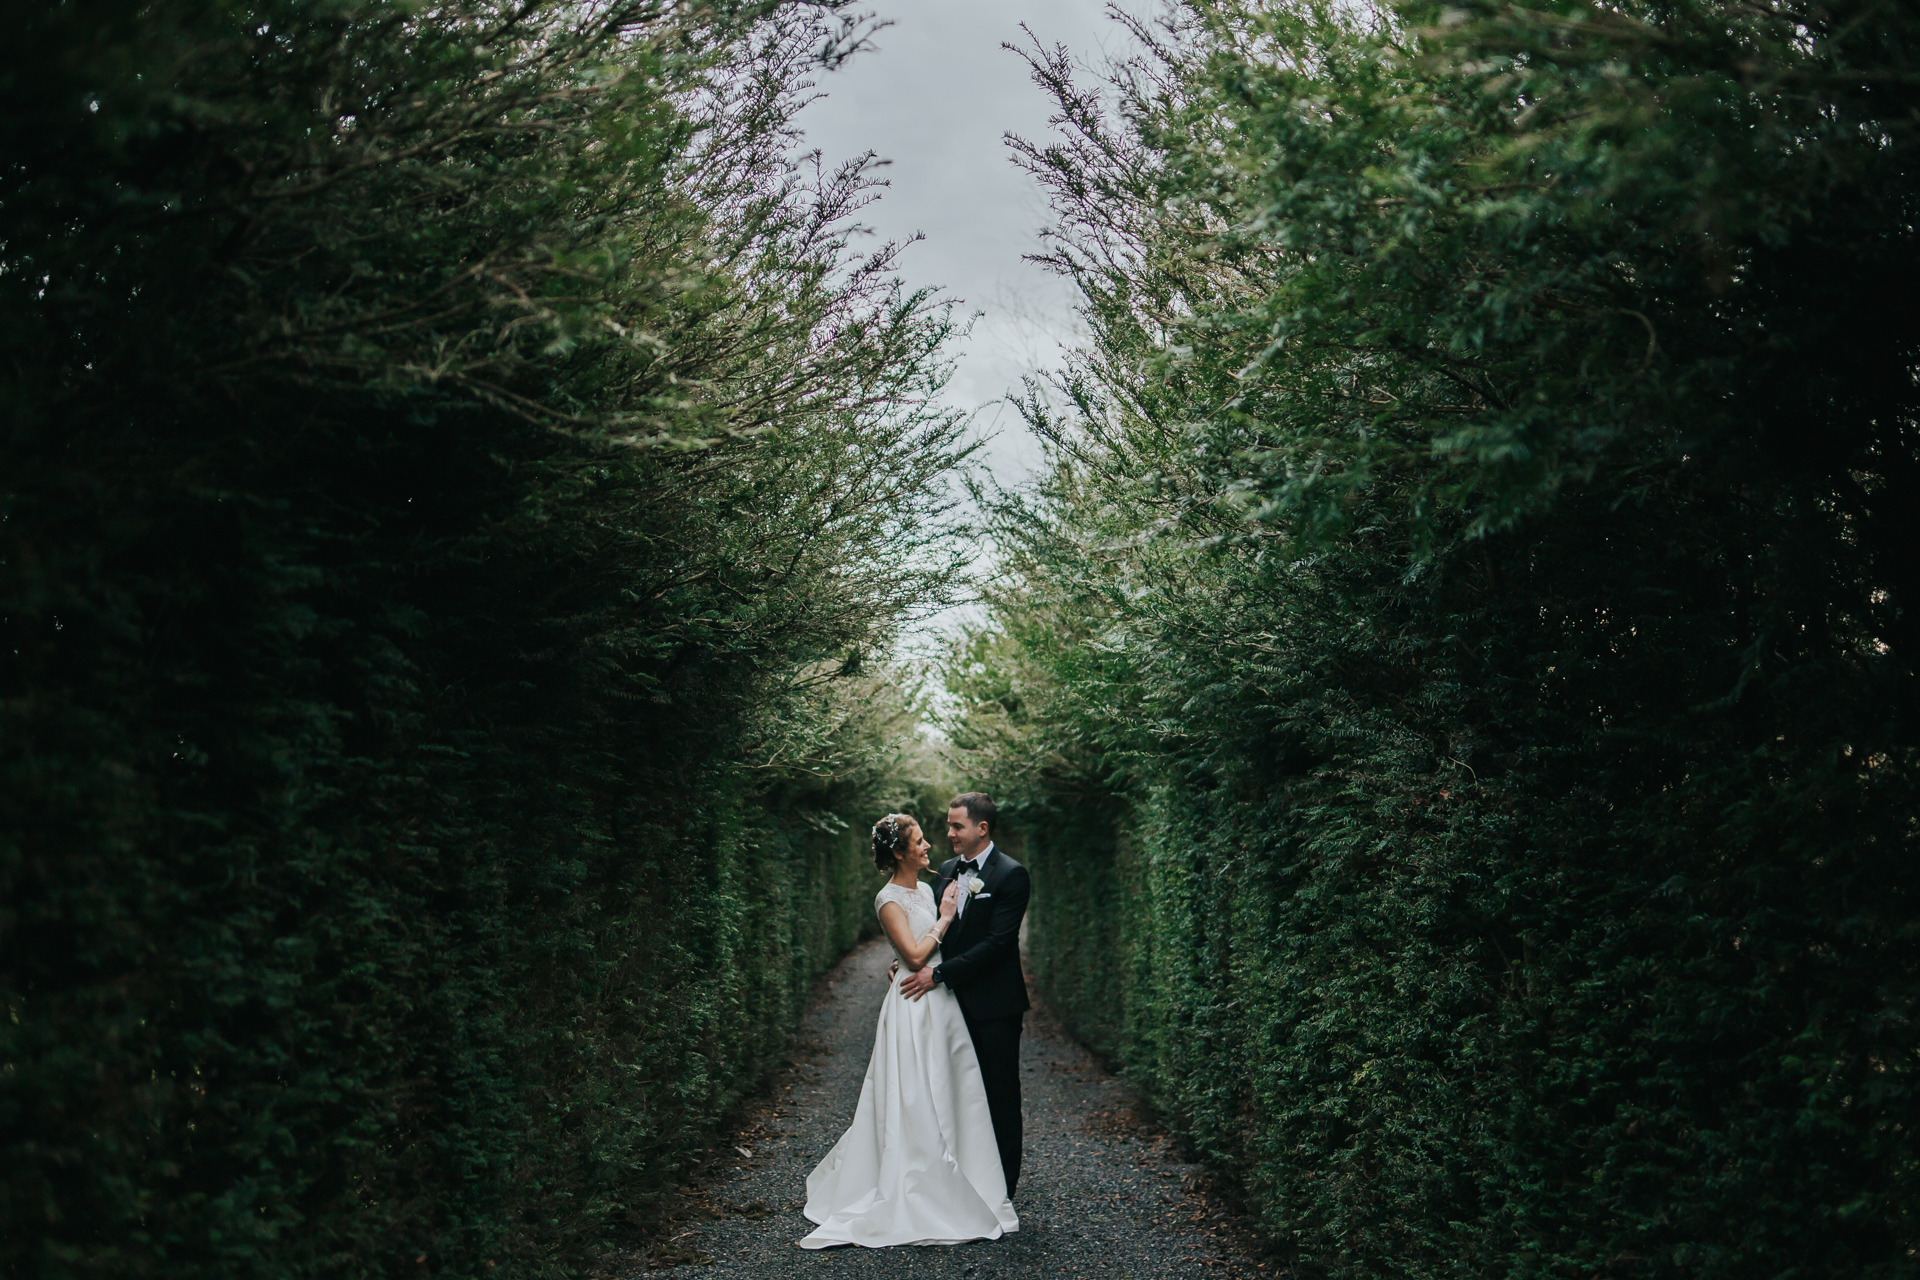 Ruth_and_Bryan_mount_druid_alternative_weddings-29.jpg